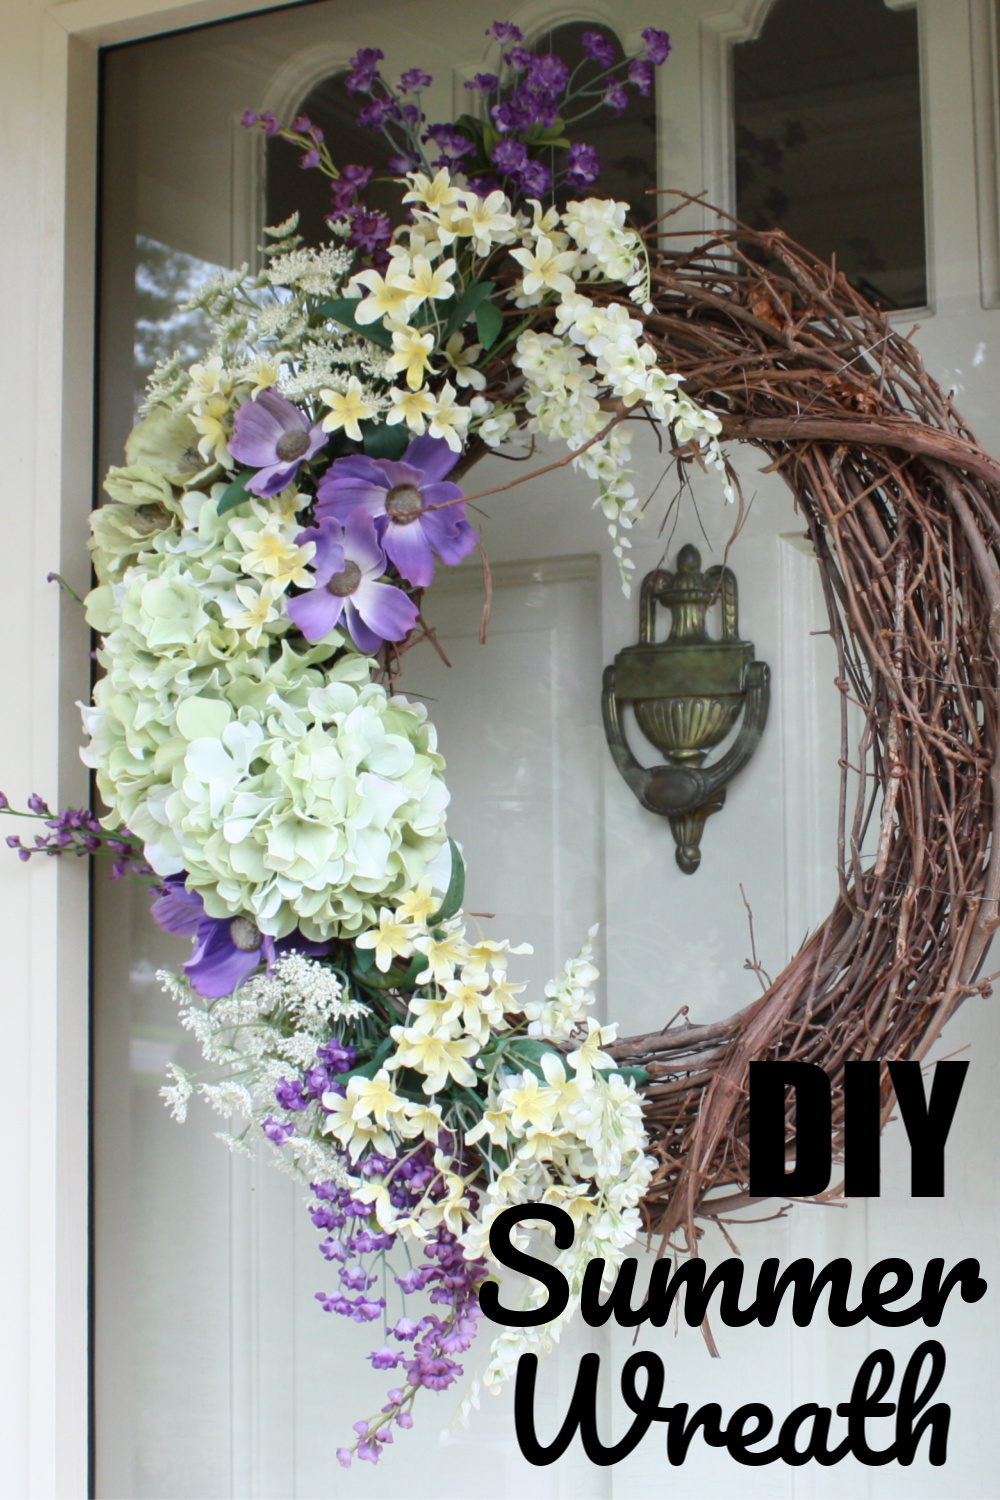 DIY Summer Wreath - Faux floral stems in white, purple, and pale yellow adorn a wreath for summer. #summerwreath #wreath #wreatidea via @spaula